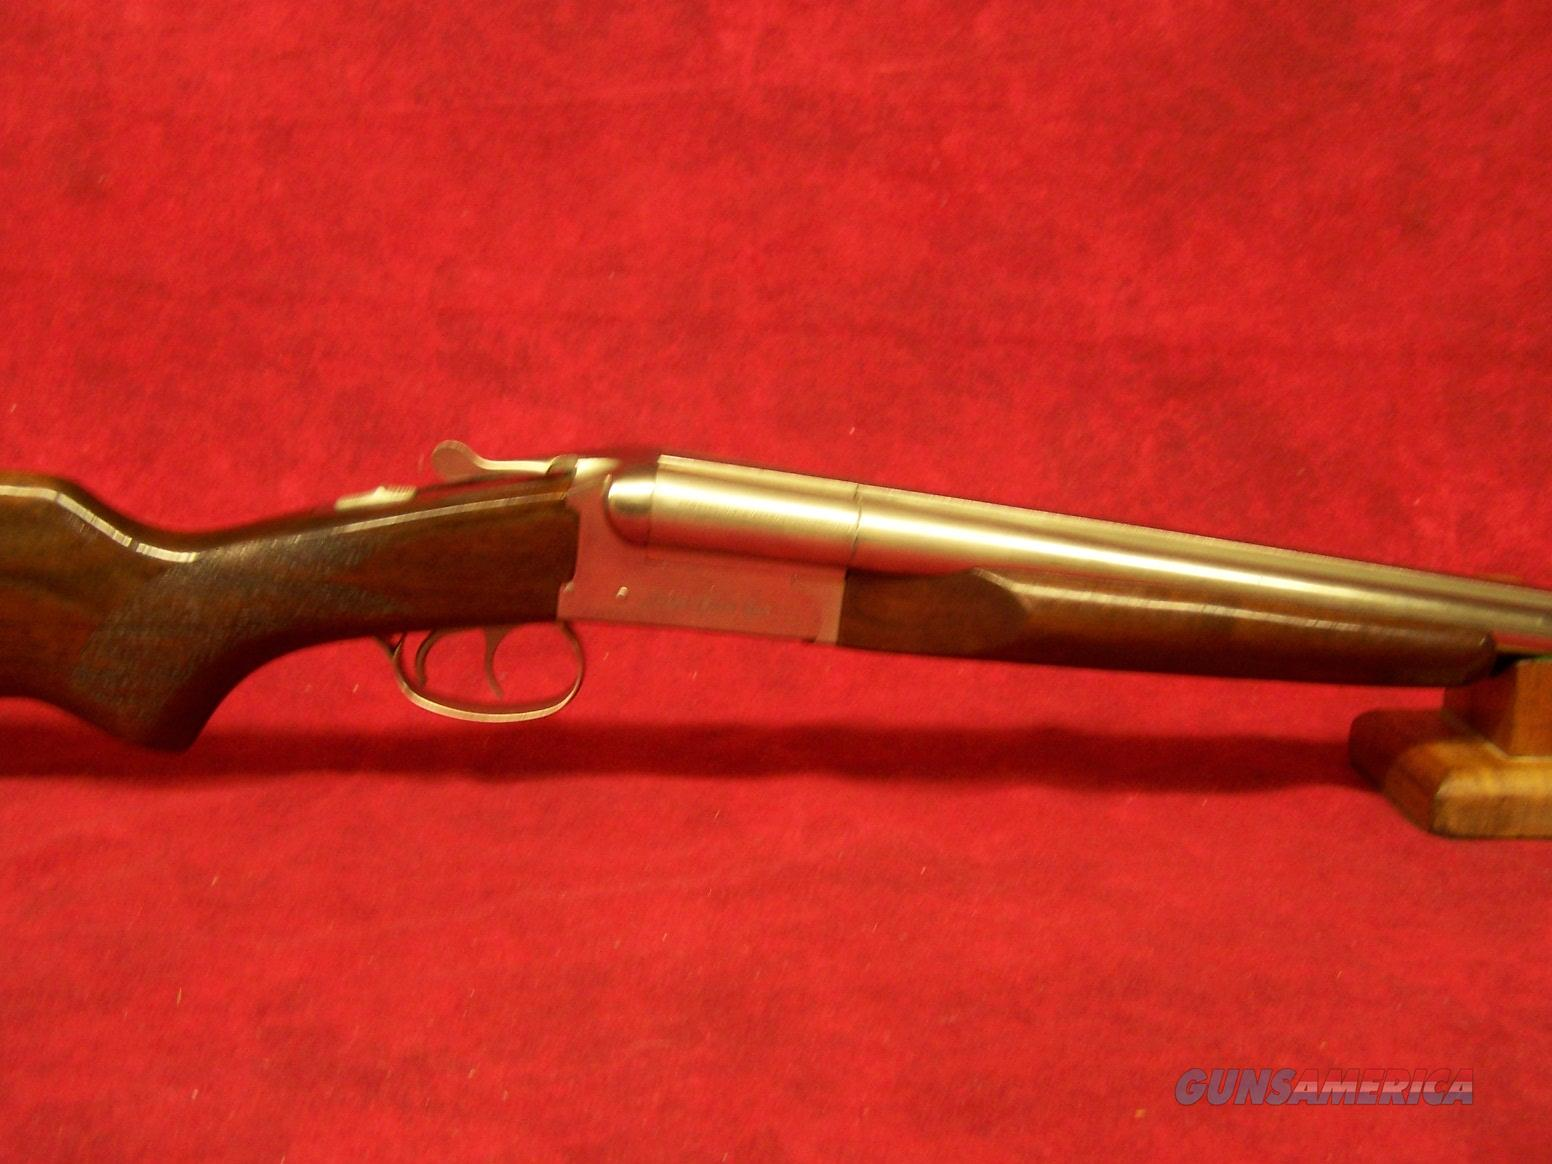 "Stoeger Coach Gun Supreme 20Ga 3"" SxS AA-Grade Gloss Walnut Polished Nickel 20"" Barrel (31489)  Guns > Shotguns > Stoeger Shotguns"